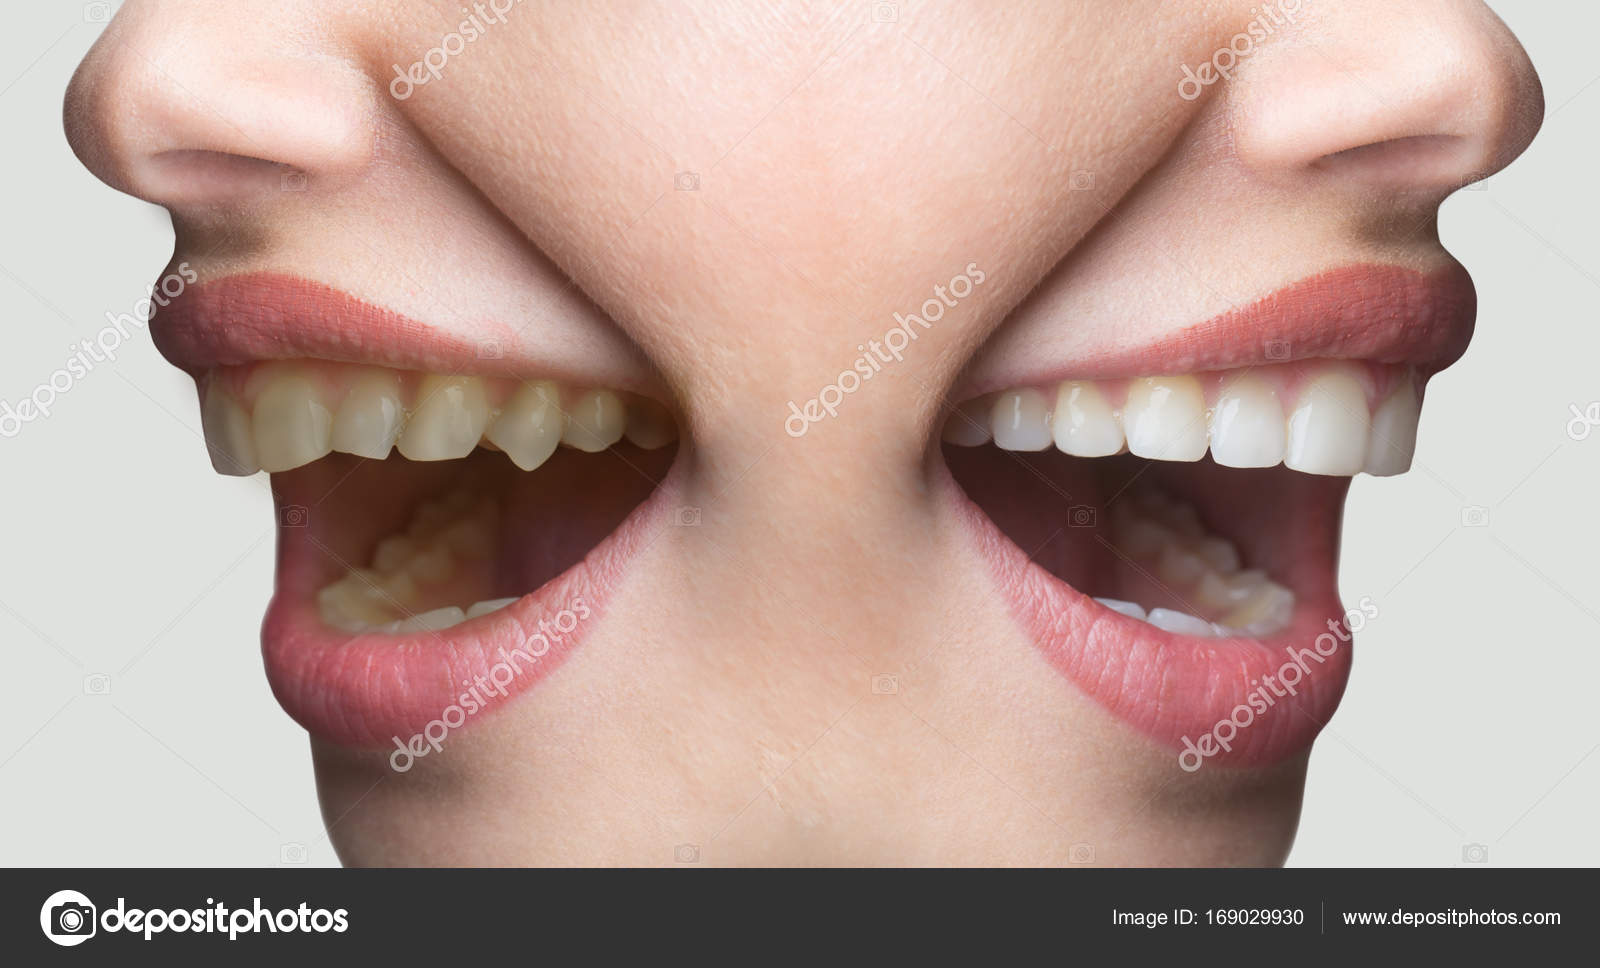 Dentistry White Smile Concept Before And After Teeth Whitening